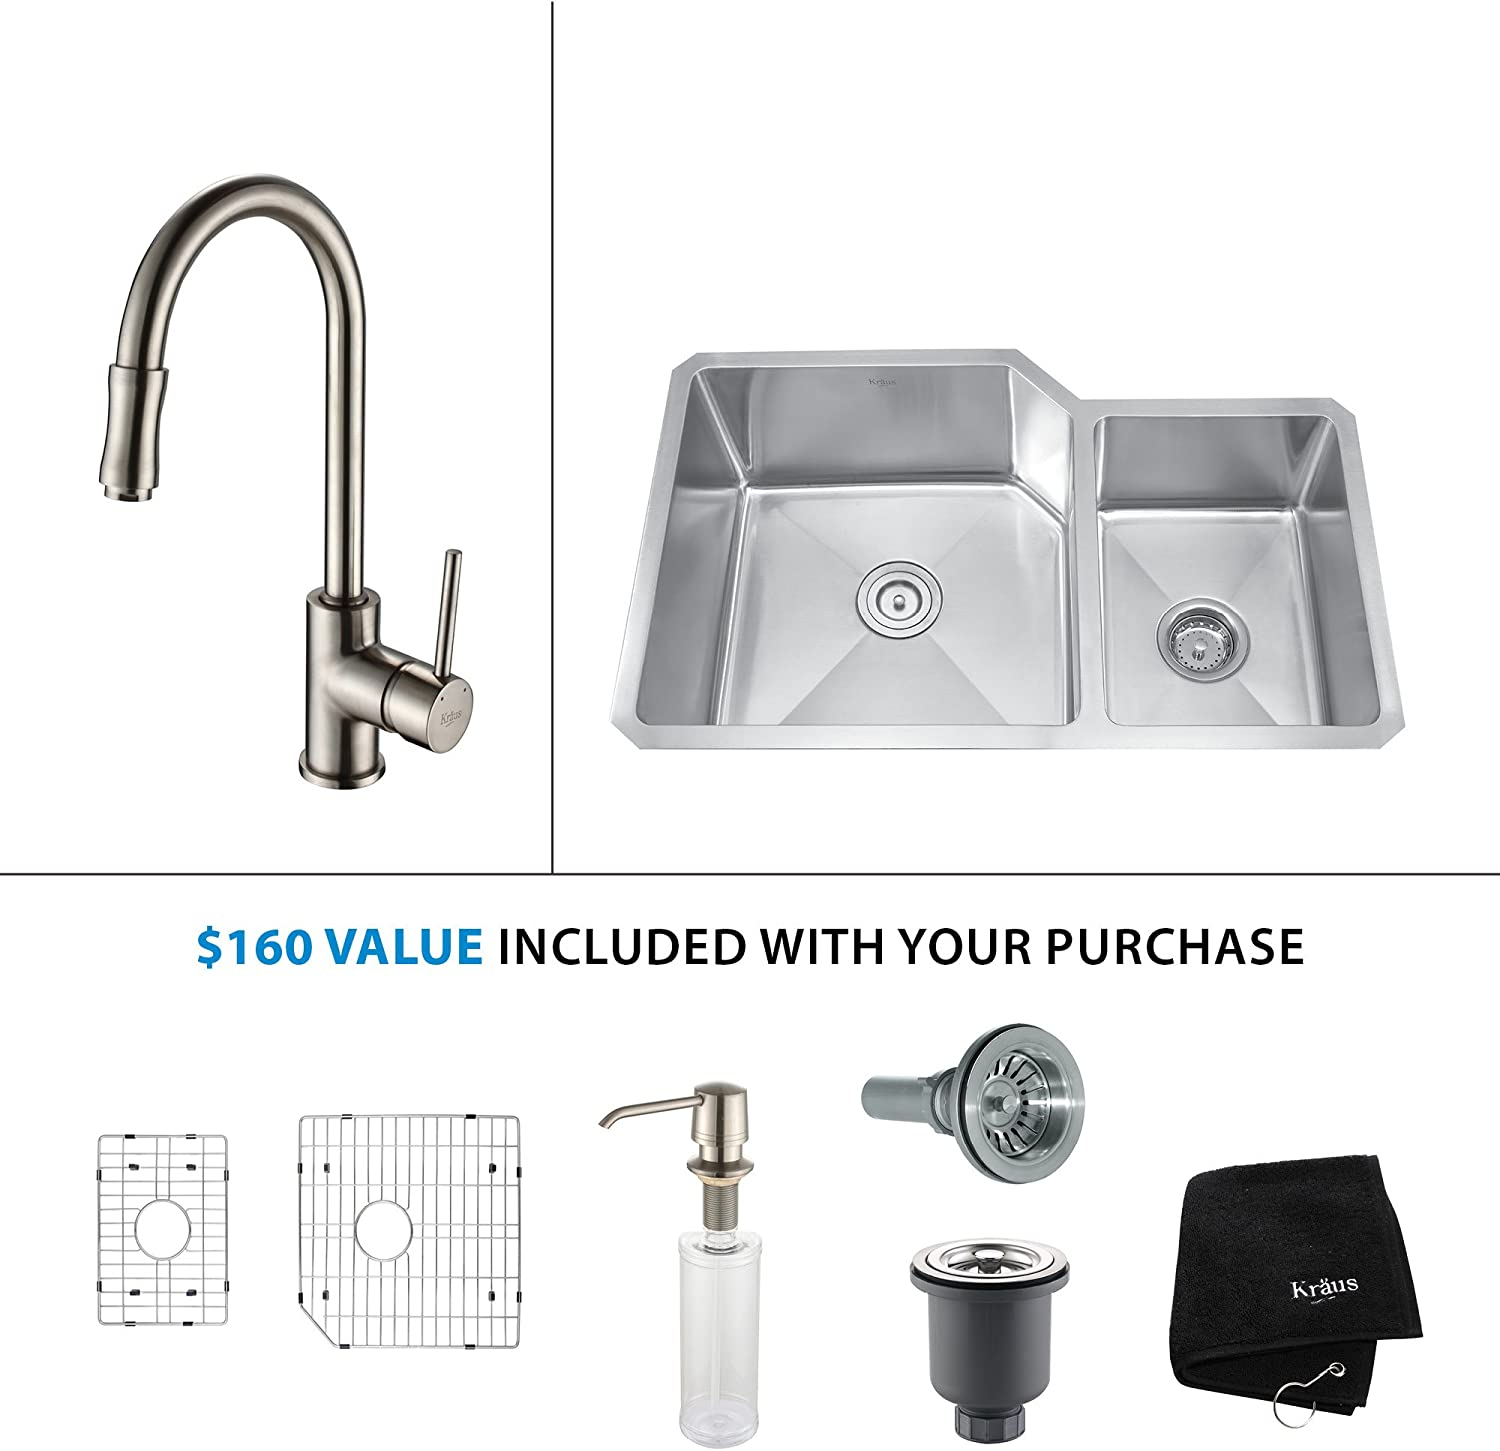 Kraus KHU103-33-KPF1612-KSD30SS 33 Undermount Double Bowl Stainless Steel Kitchen Sink with Stainless Steel Finish Kitchen Faucet and Soap Dispenser